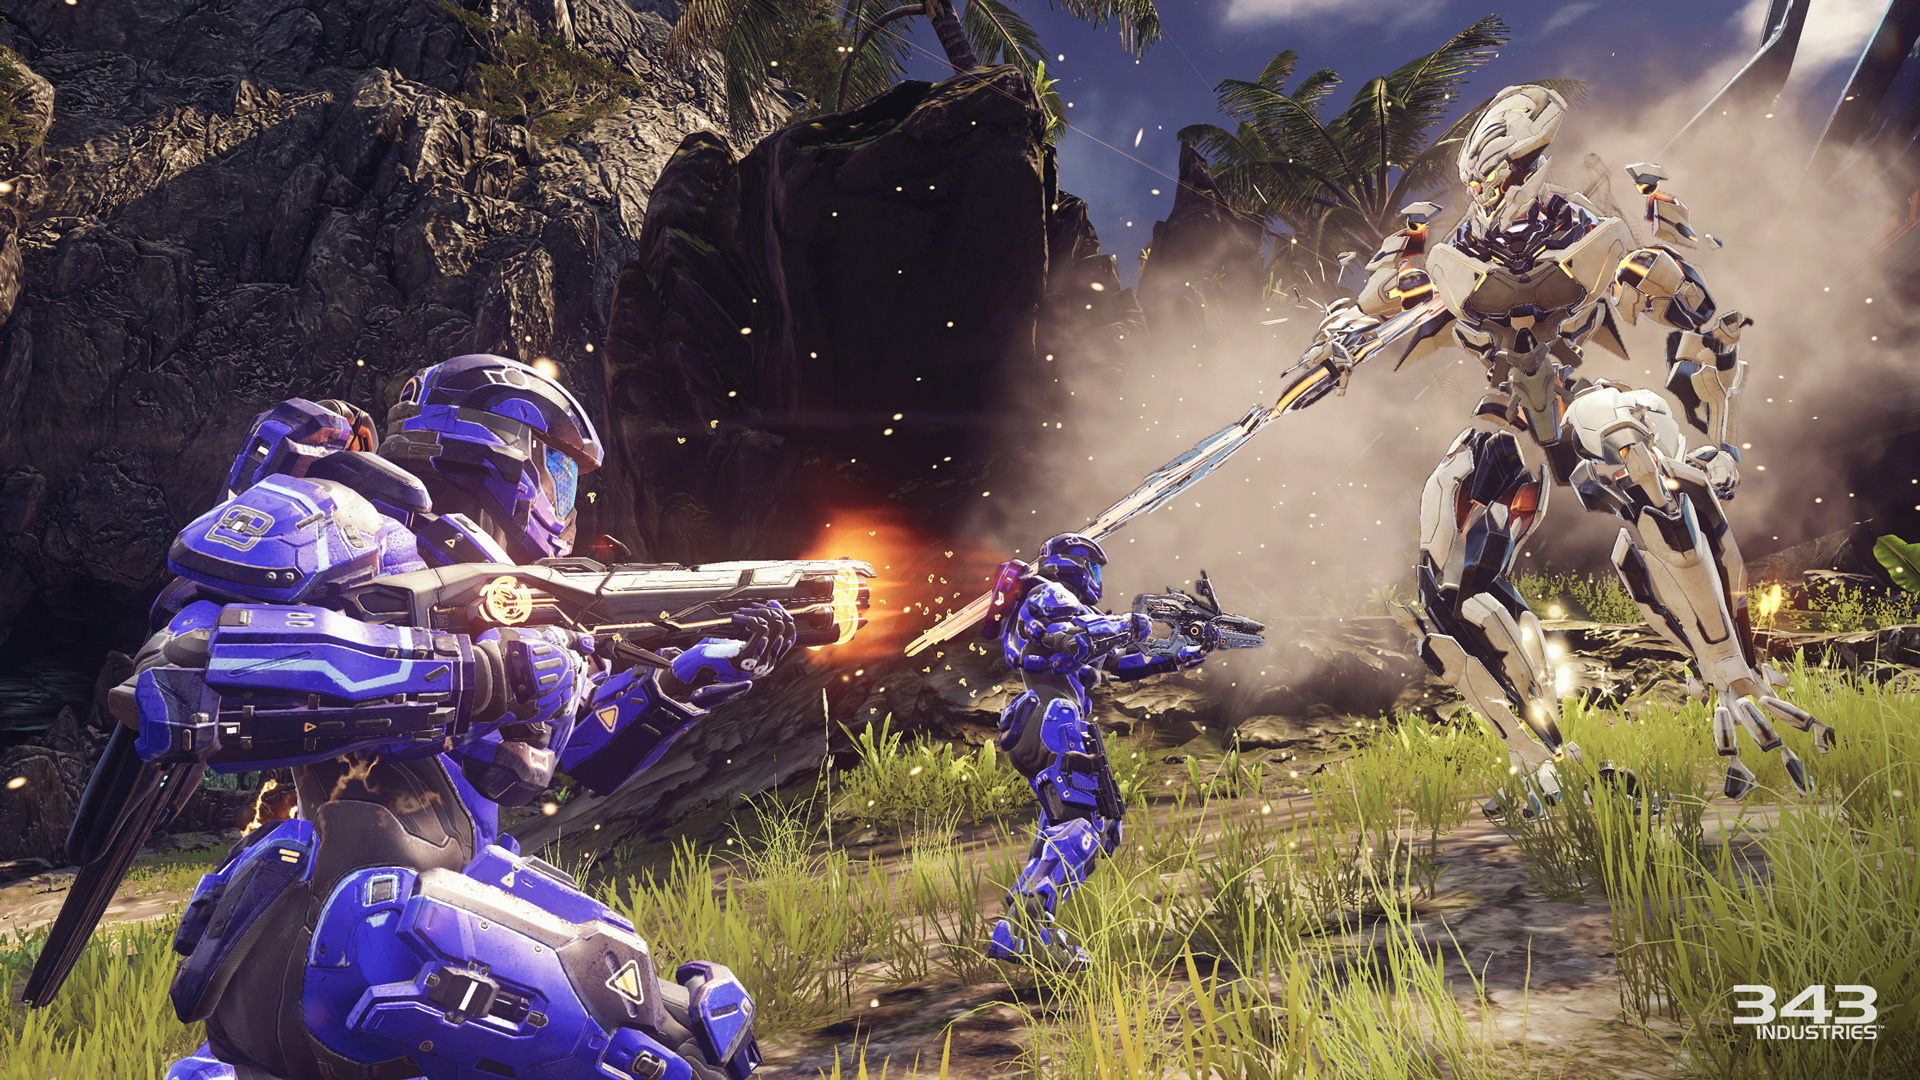 Building a Warzone – 343′s Kevin Franklin on Halo 5′s new